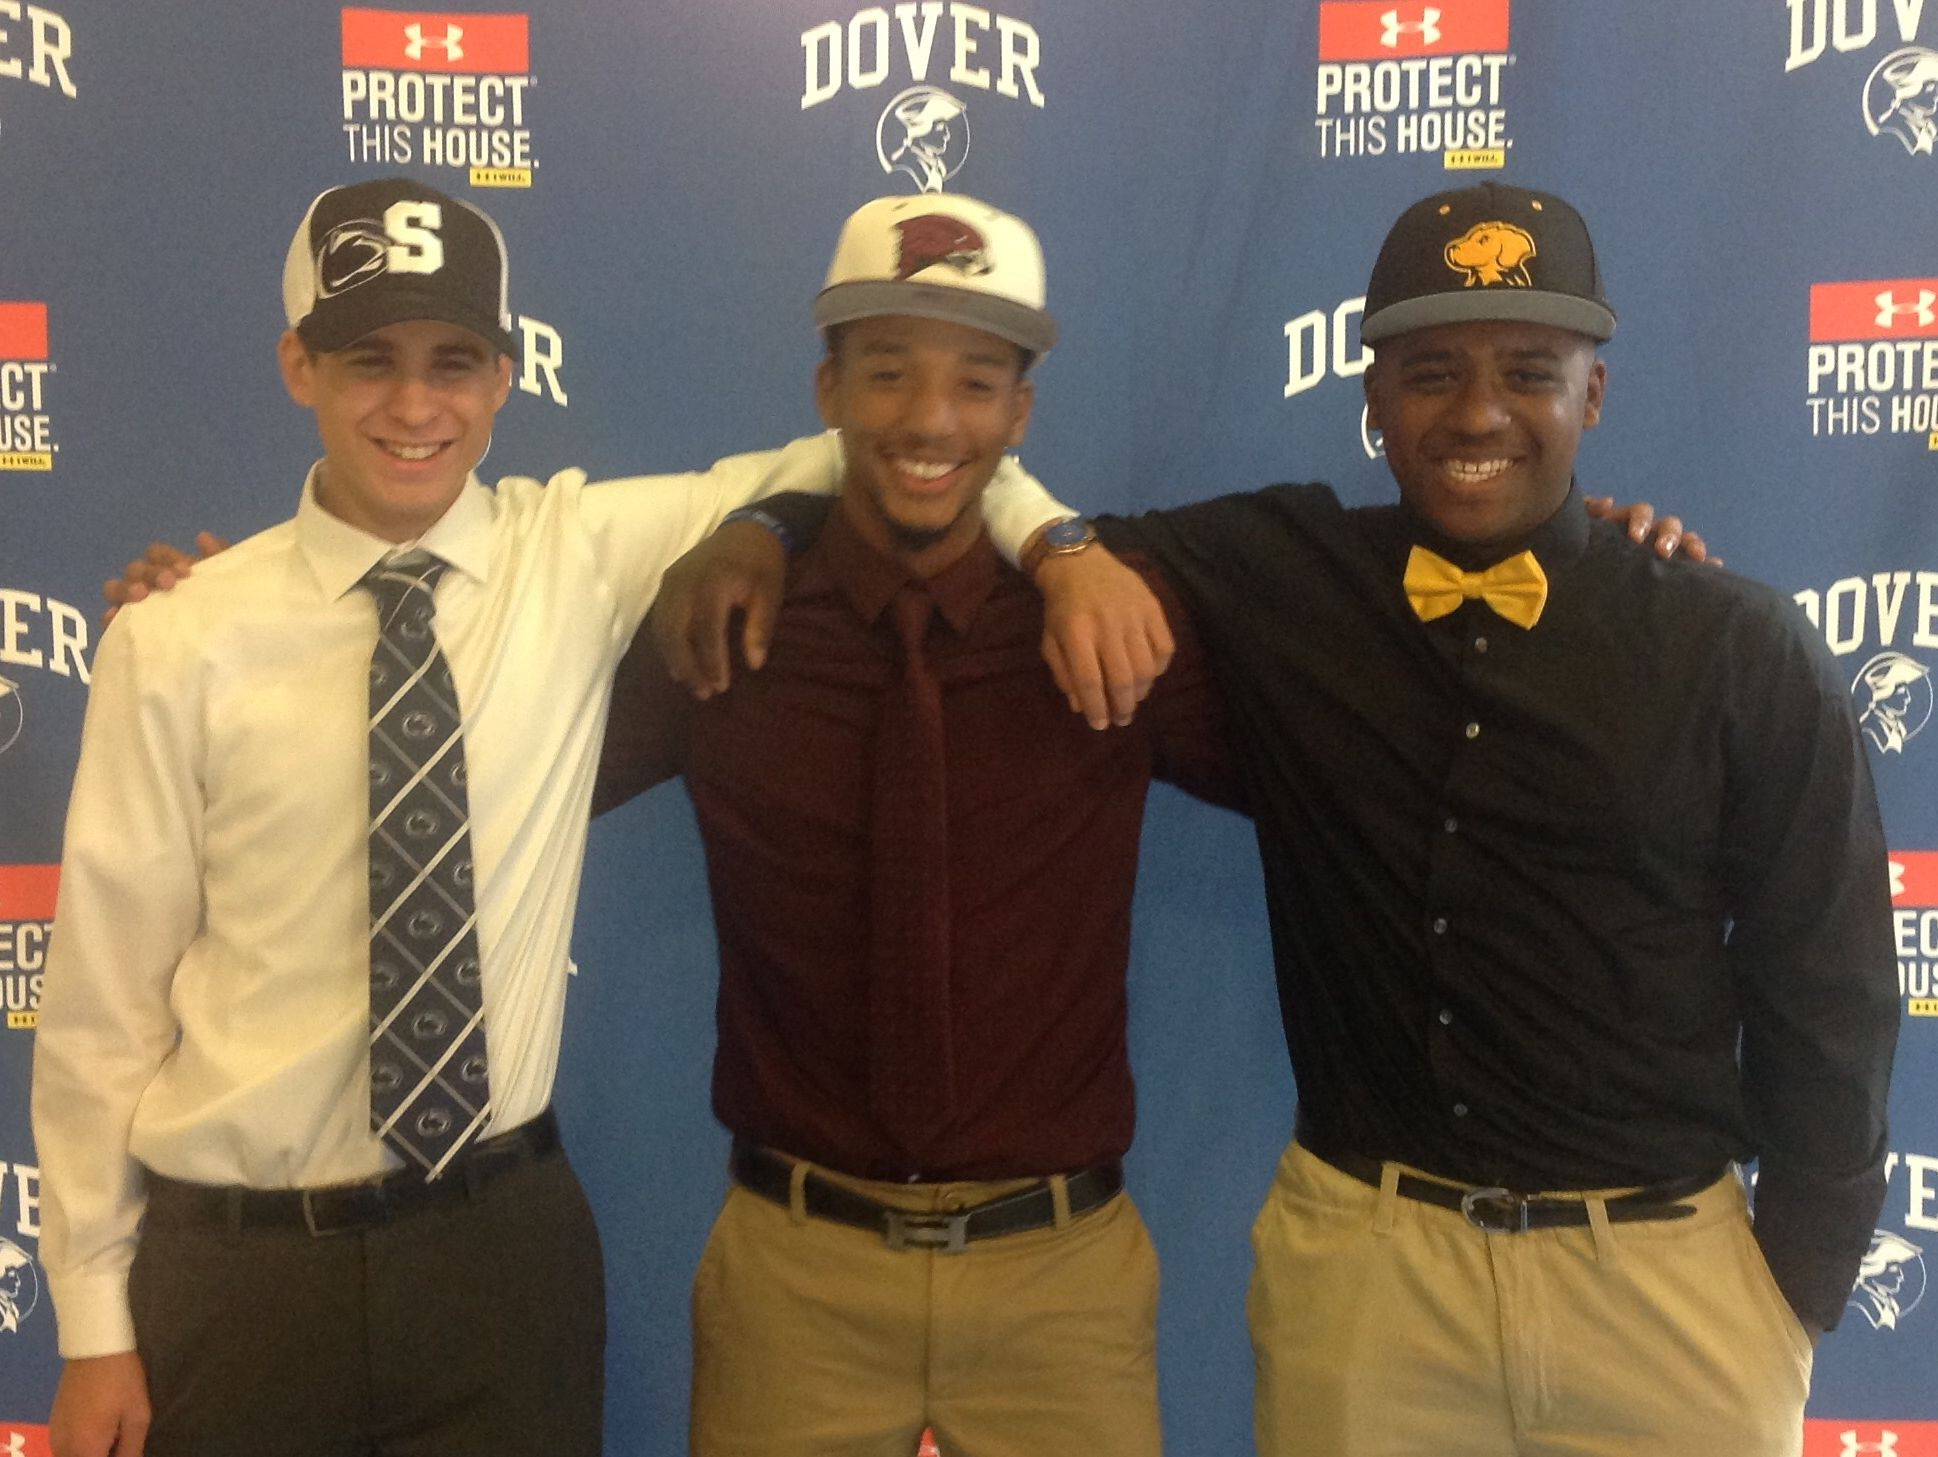 Dover High senior baseball players (from left) Joey Wunsch (Penn State Mont Alto), Avery Tunnell (UMES) and Dmitri Floyd (UMBC).